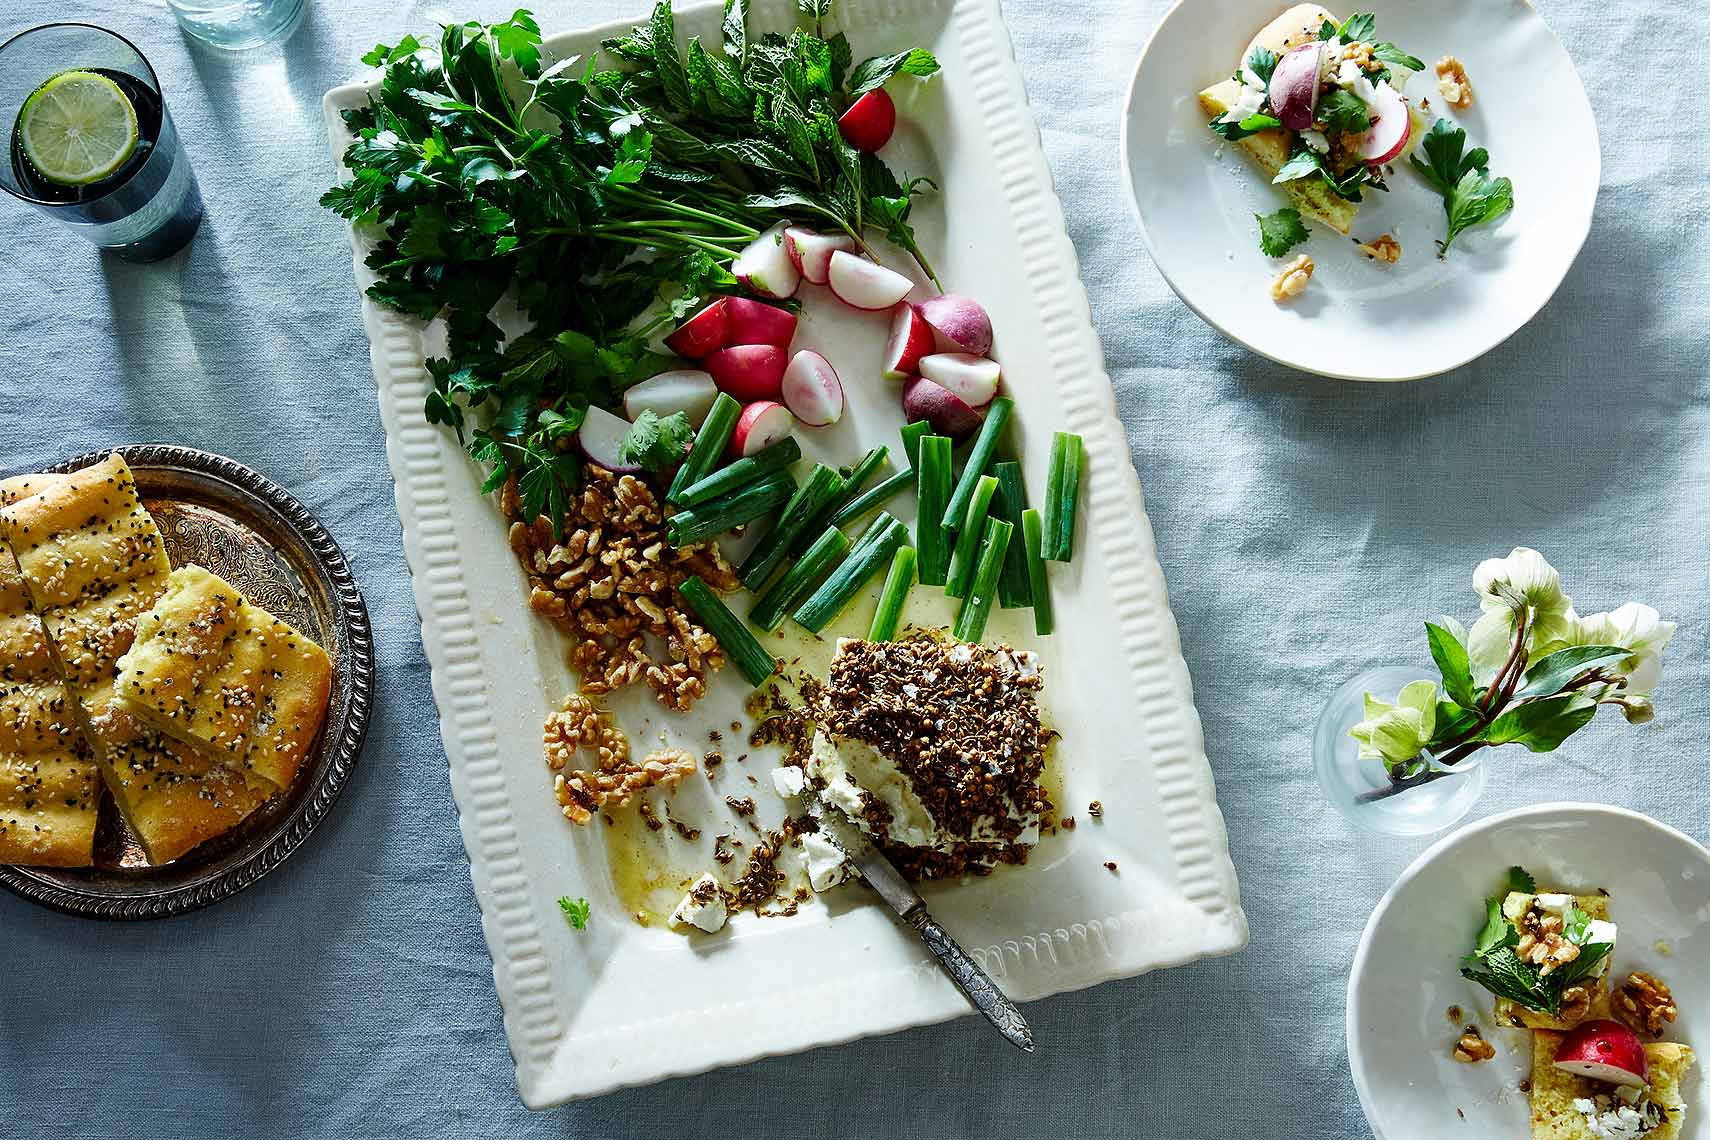 2016-0307_persian-new-year-herb-platter-with-feta-walnuts-radhises-and-flatbread_james-ransom-043